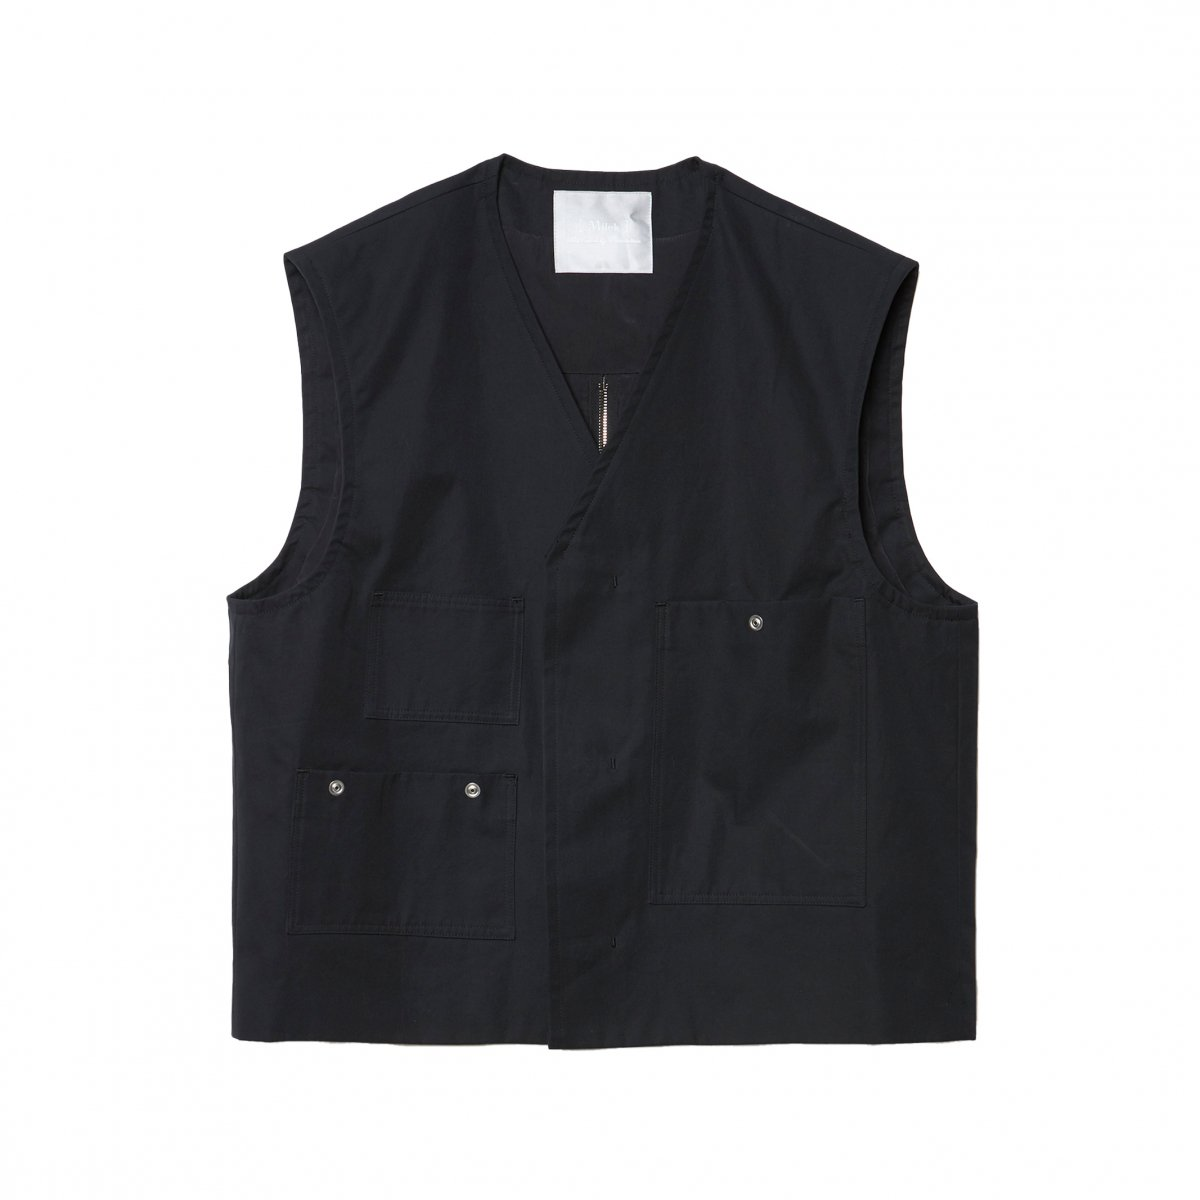 <img class='new_mark_img1' src='https://img.shop-pro.jp/img/new/icons5.gif' style='border:none;display:inline;margin:0px;padding:0px;width:auto;' />OLMETEX DYED COTTON CONSTRUCTIVE VEST / BLACK